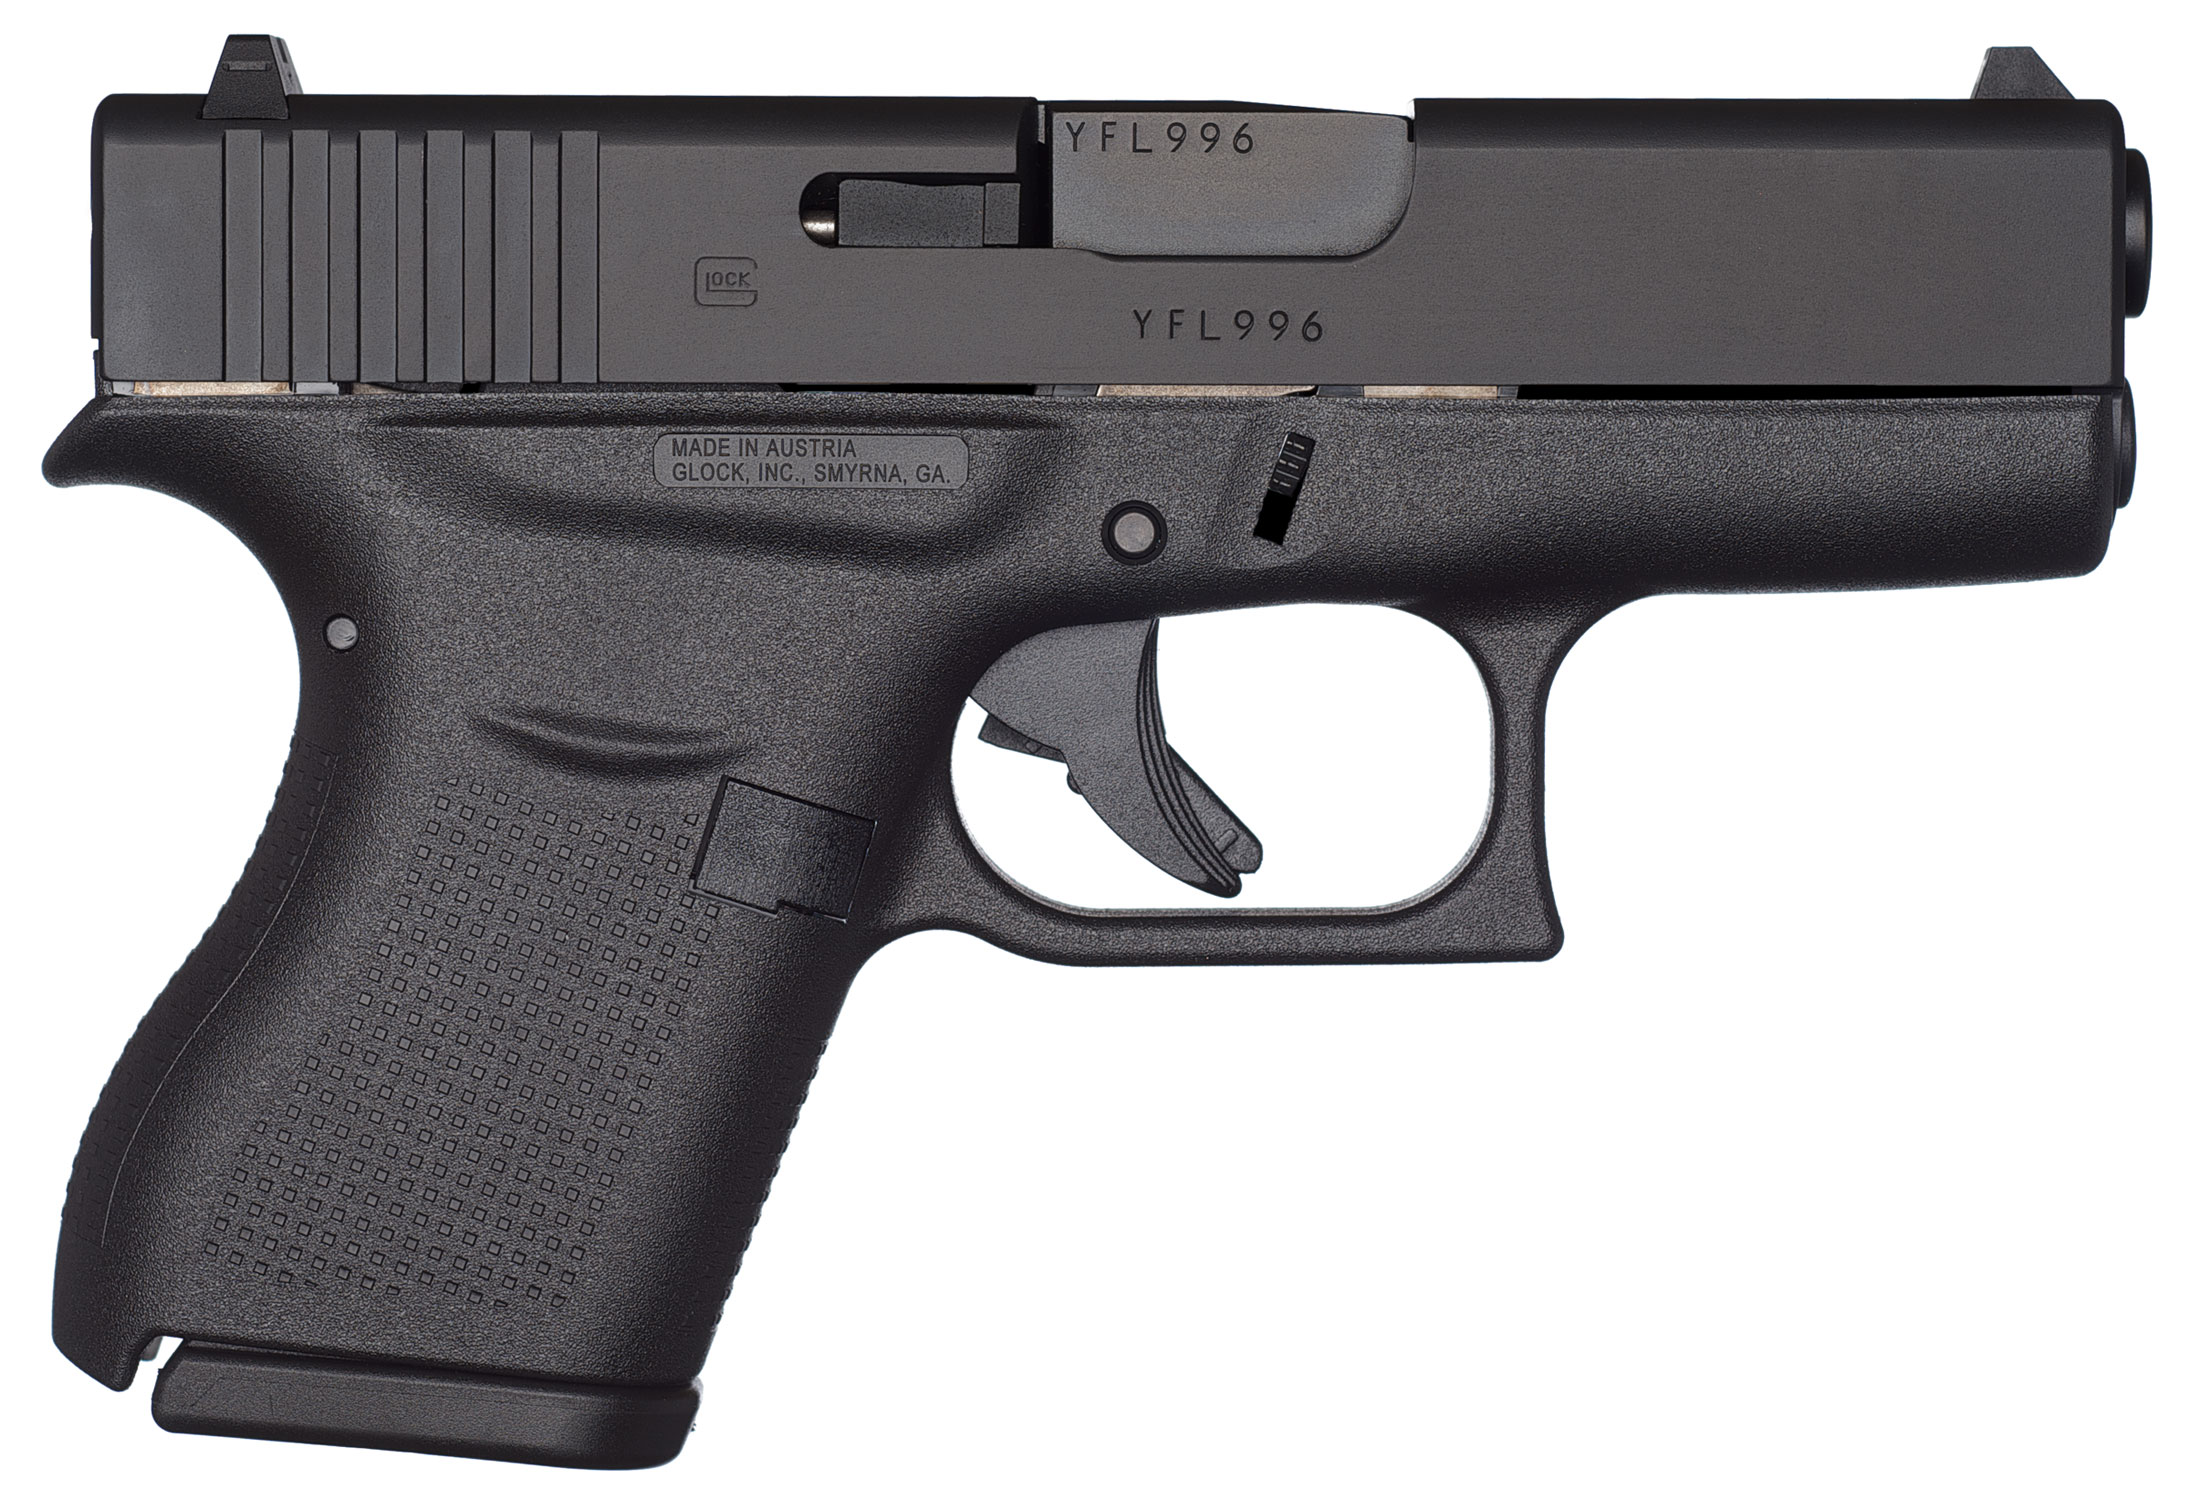 "Glock PI4350201 G43 Subcompact Double 9mm Luger 3.39"" 6+1 Black Polymer Grip/Frame Grip Black"